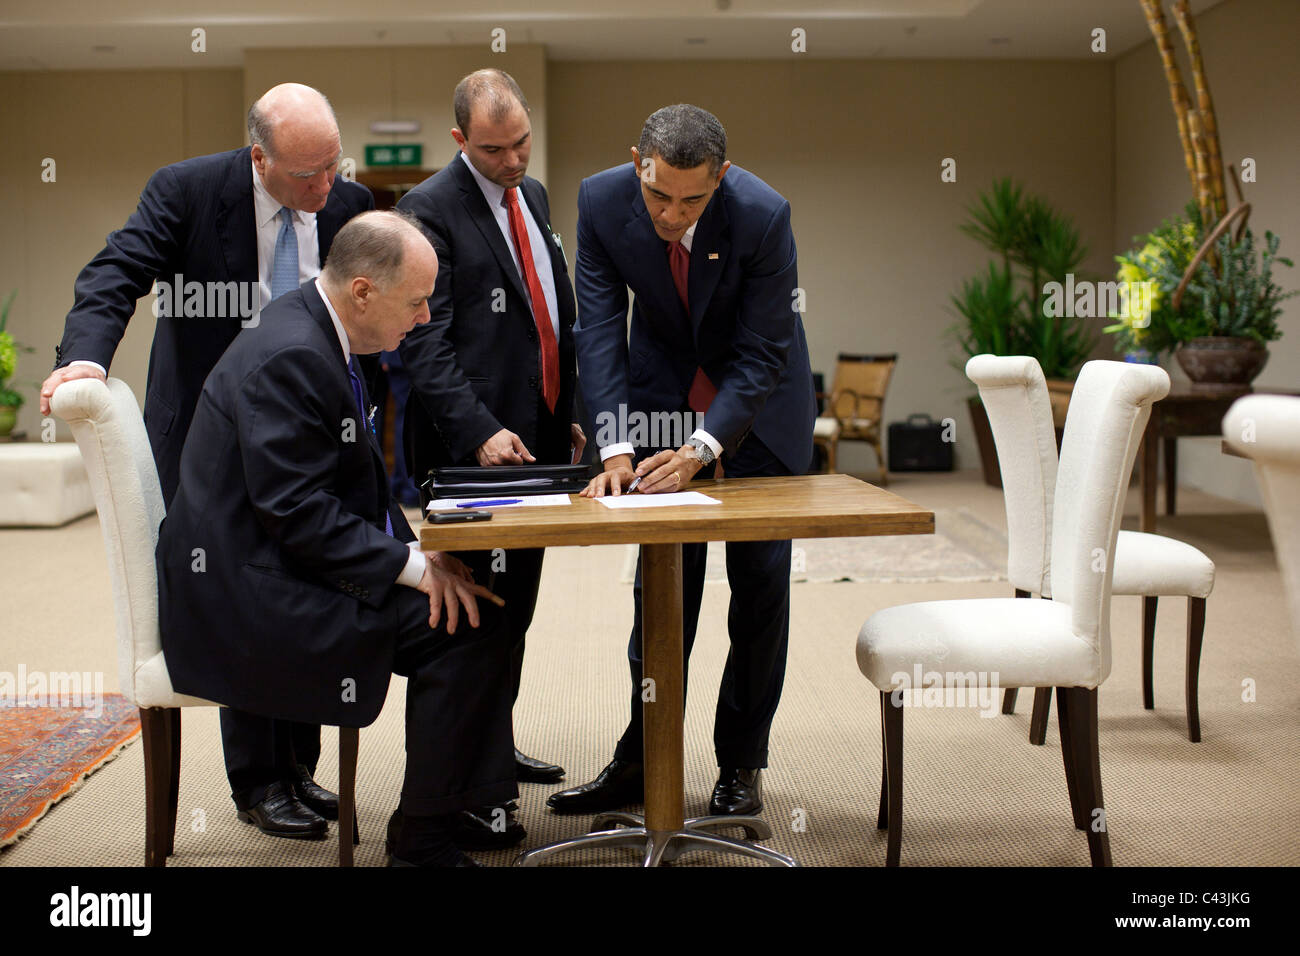 President Barack Obama with Chief of Staff Bill Daley, National Security Advisor Tom Donilon and Ben Rhodes - Stock Image